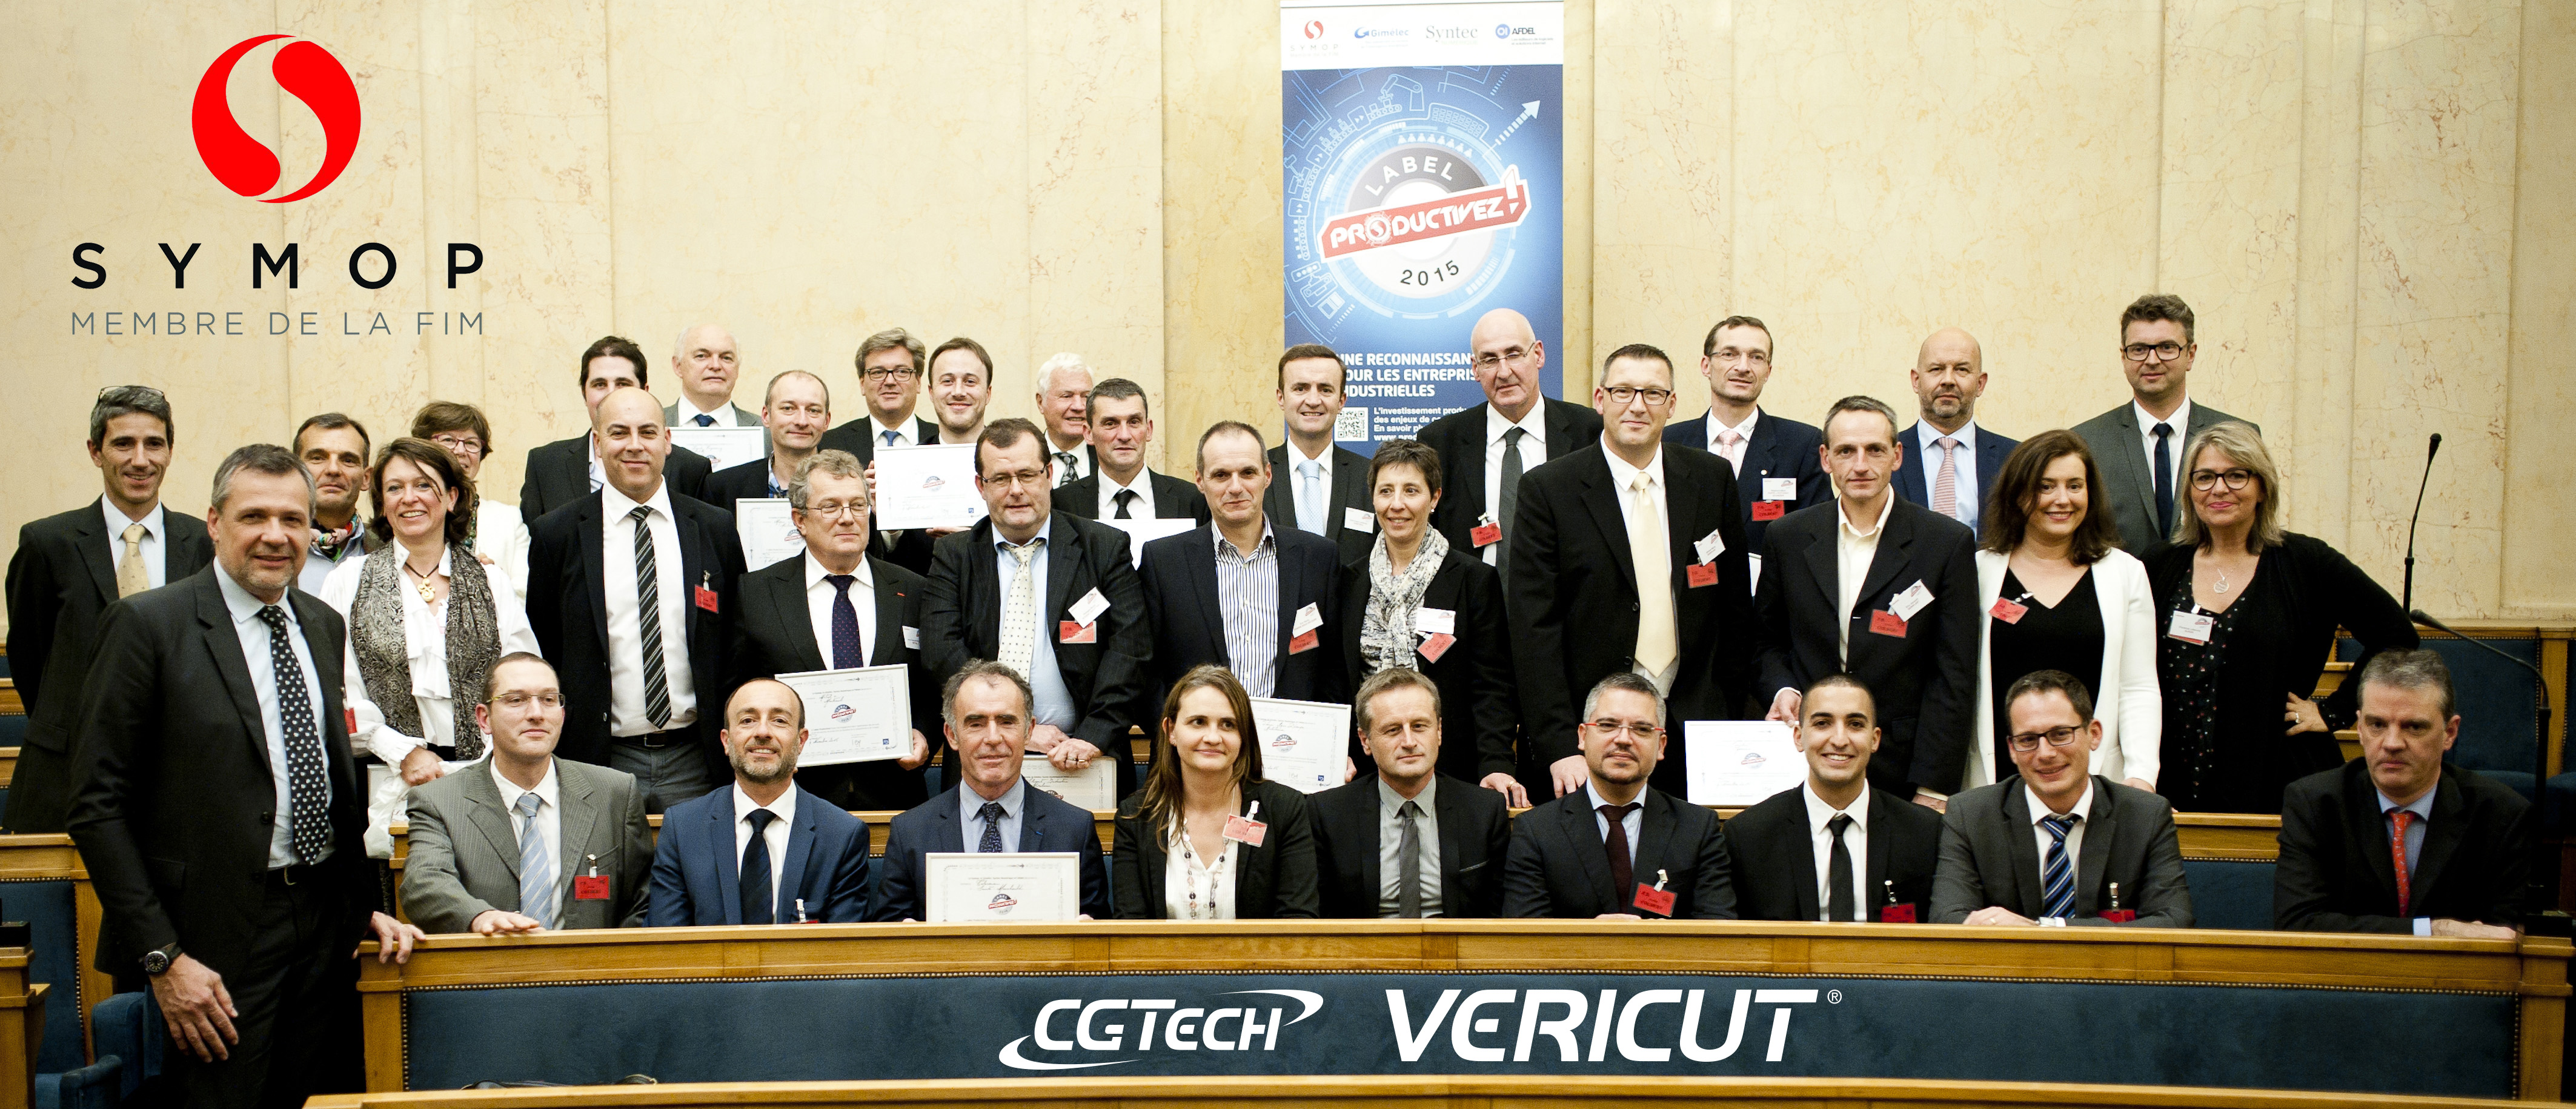 Labels productivez 2015 cgtech vericut symop